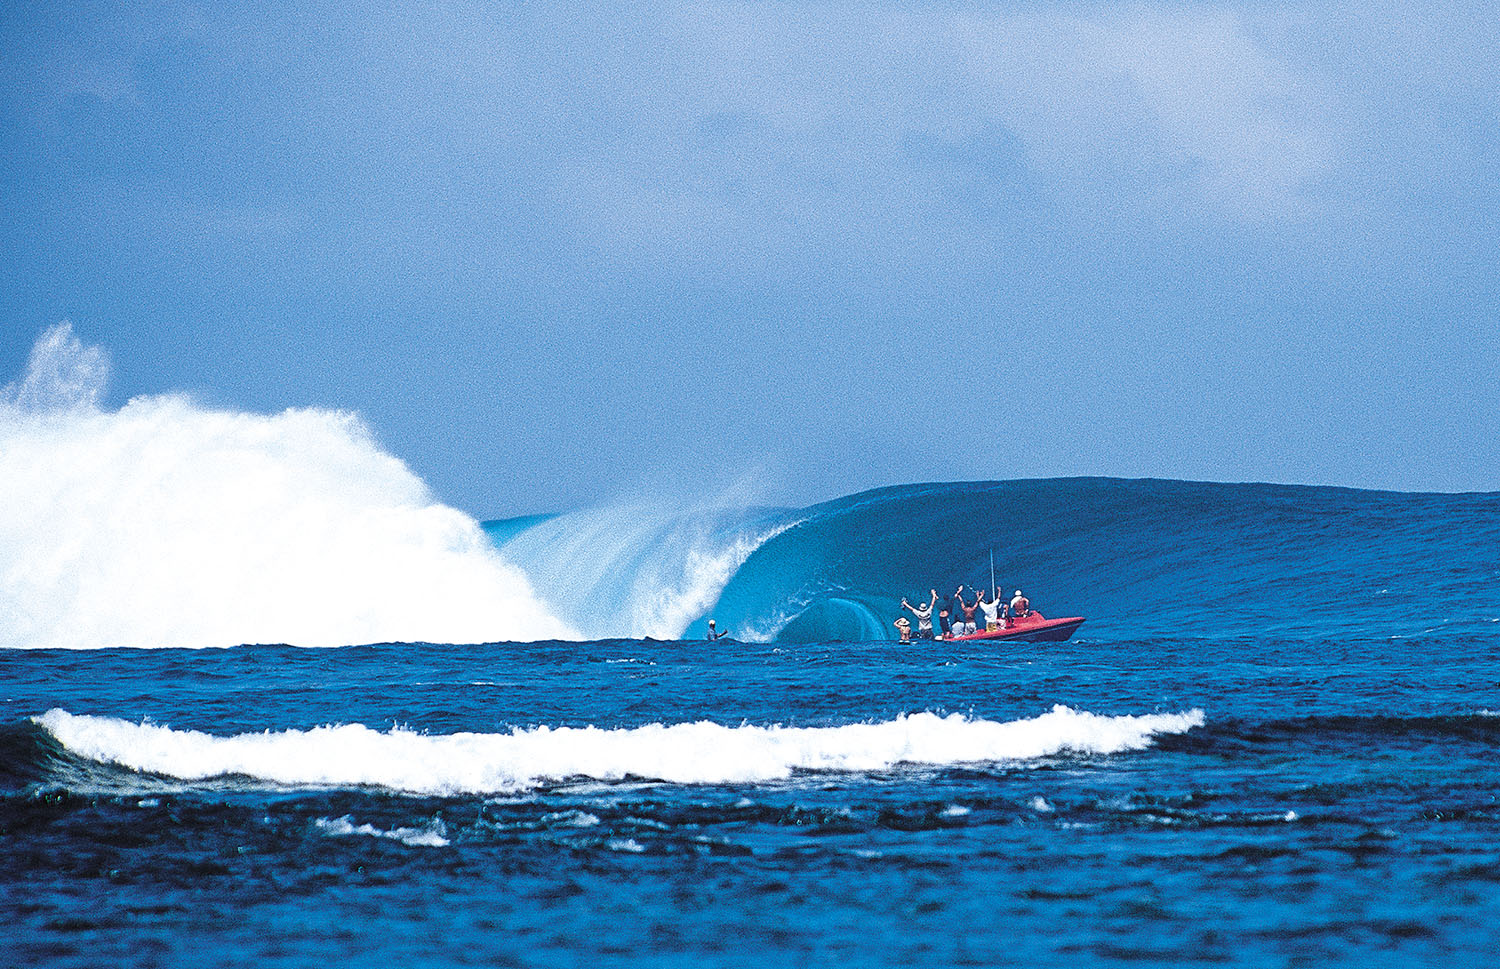 Yup. This is Laird's Millennium Wave from a different angle. Photo: Sean Davey